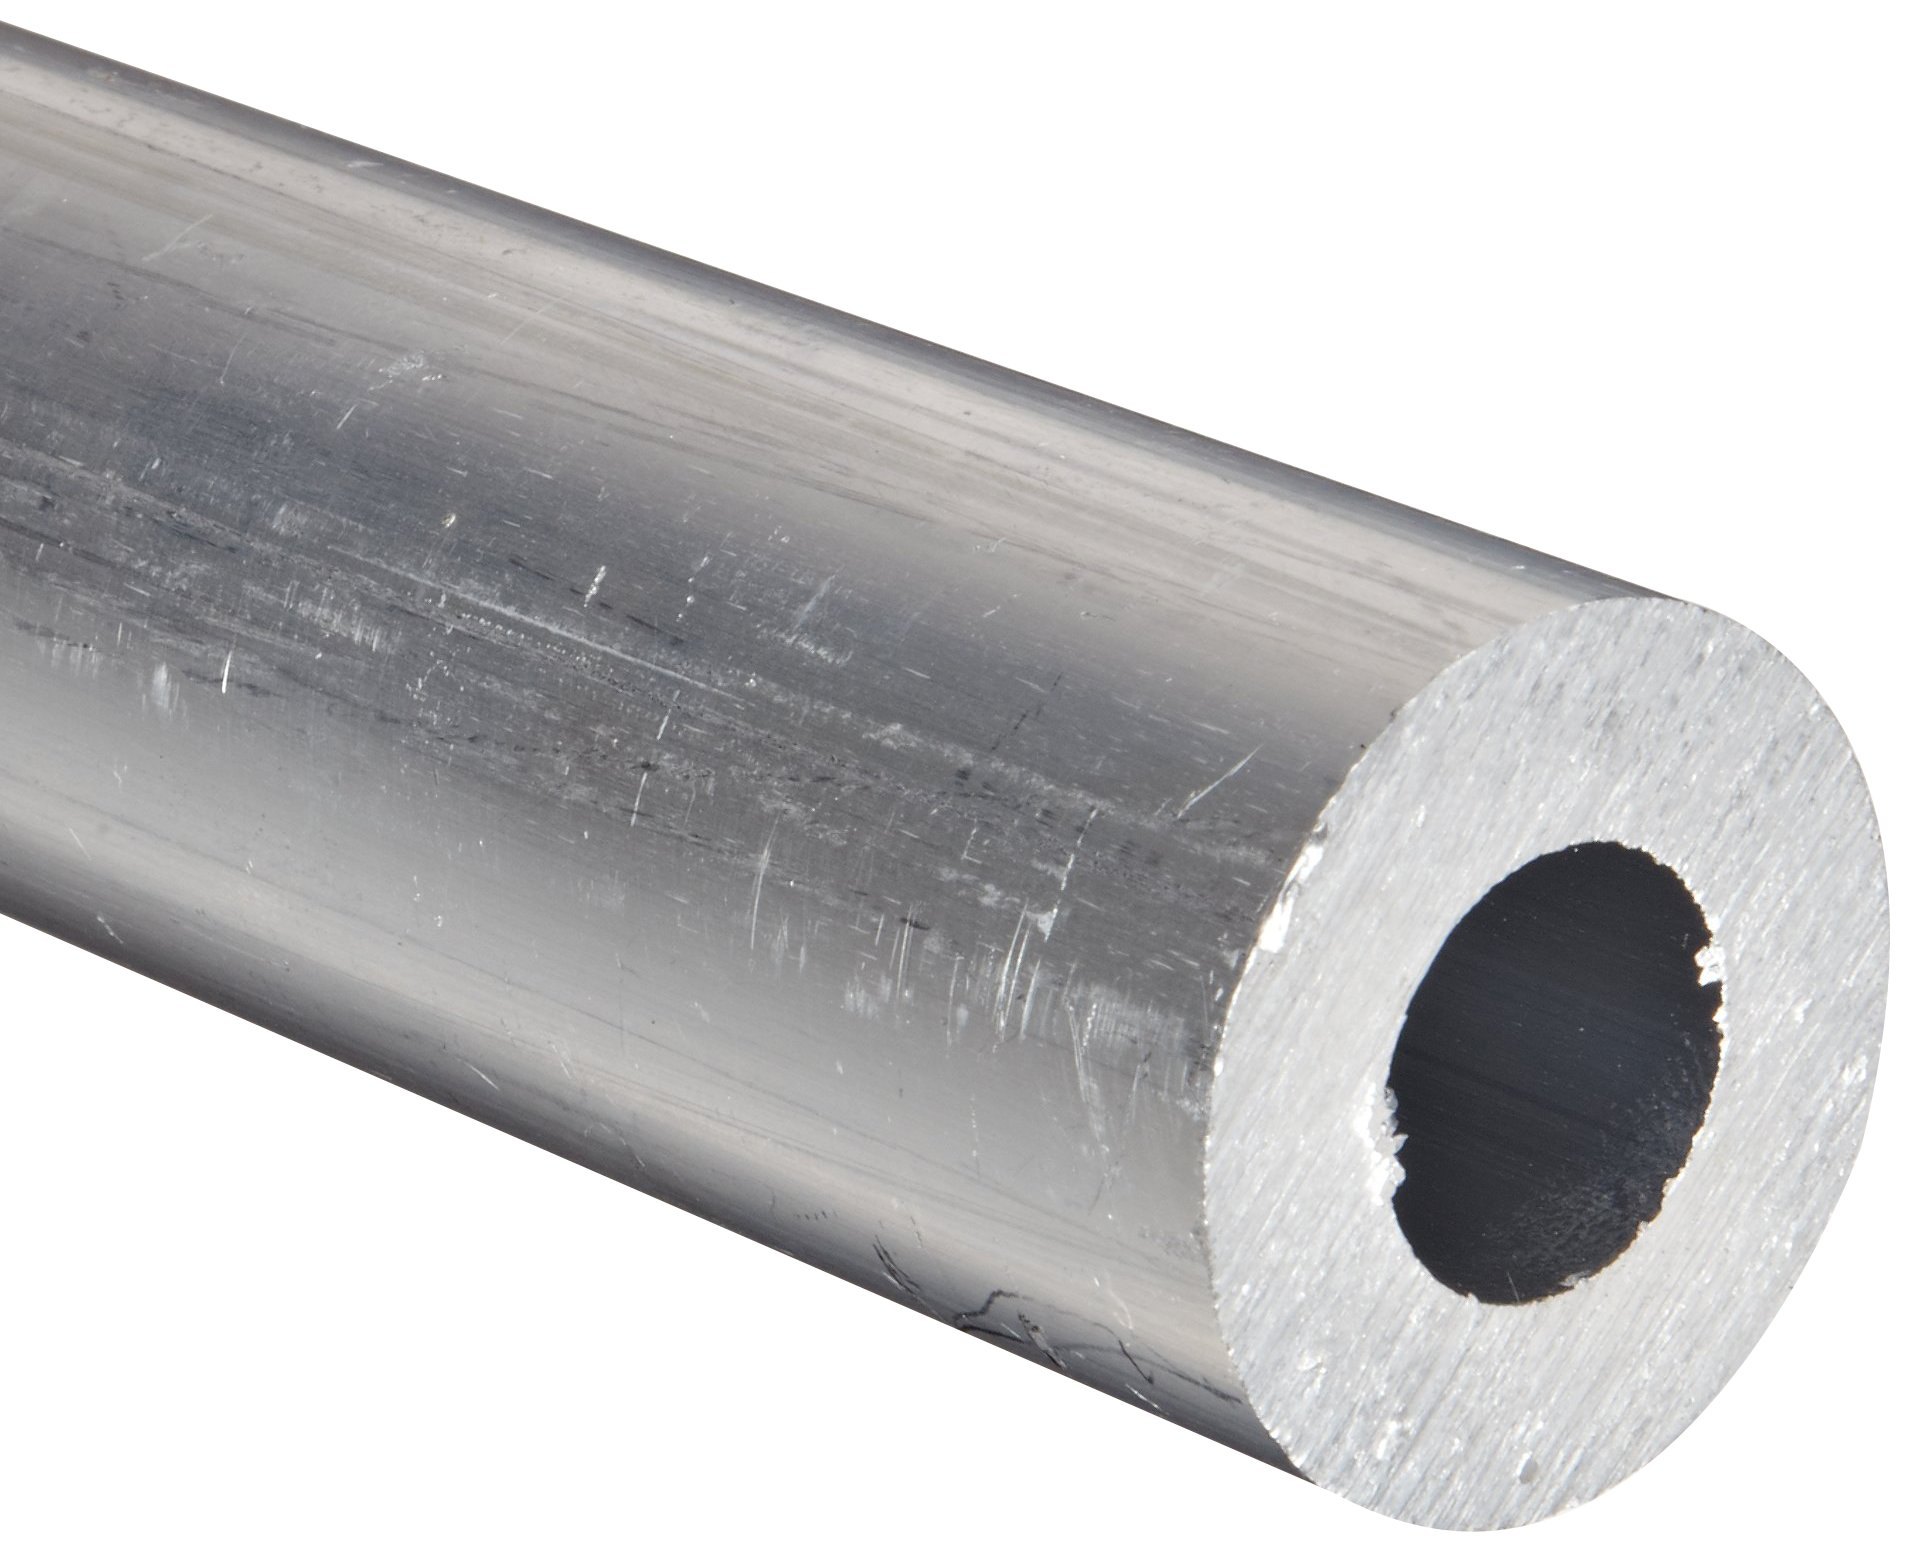 Aluminum 6061-T6 Extruded Round Tubing,  ASTM B210,  6'' OD,  5.75'' ID,  36'' Length